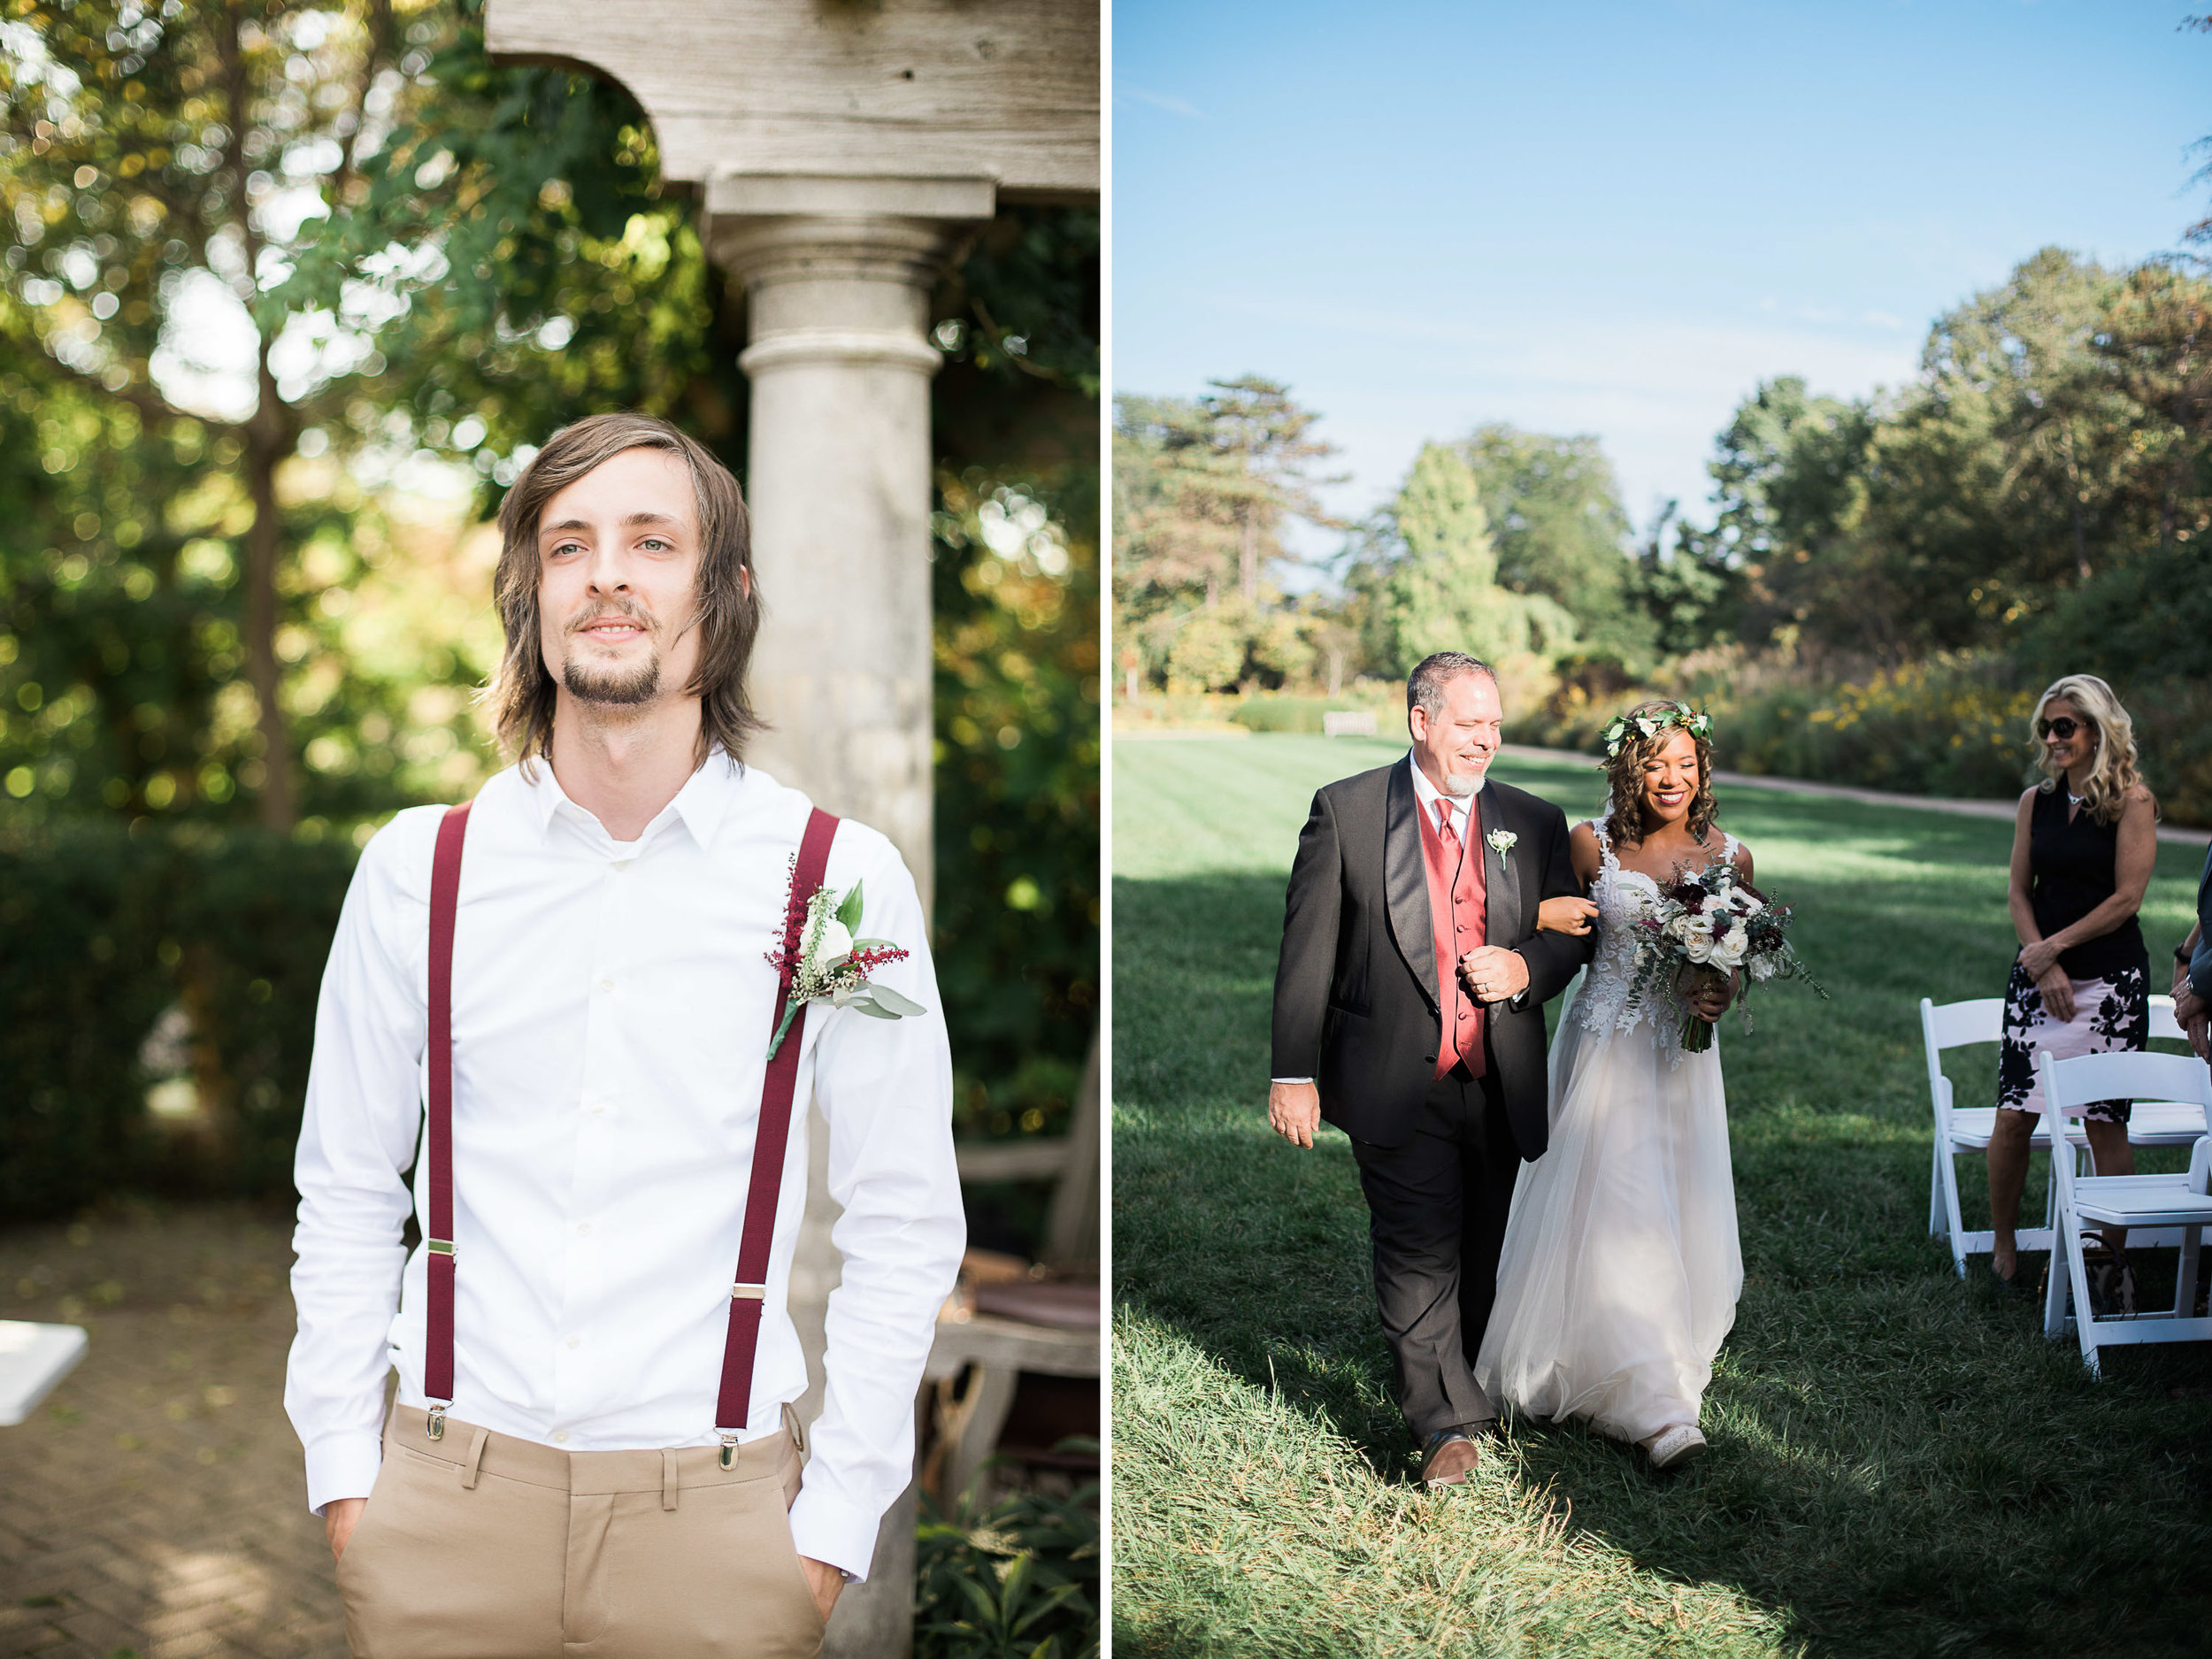 c - ault park wedding.jpg